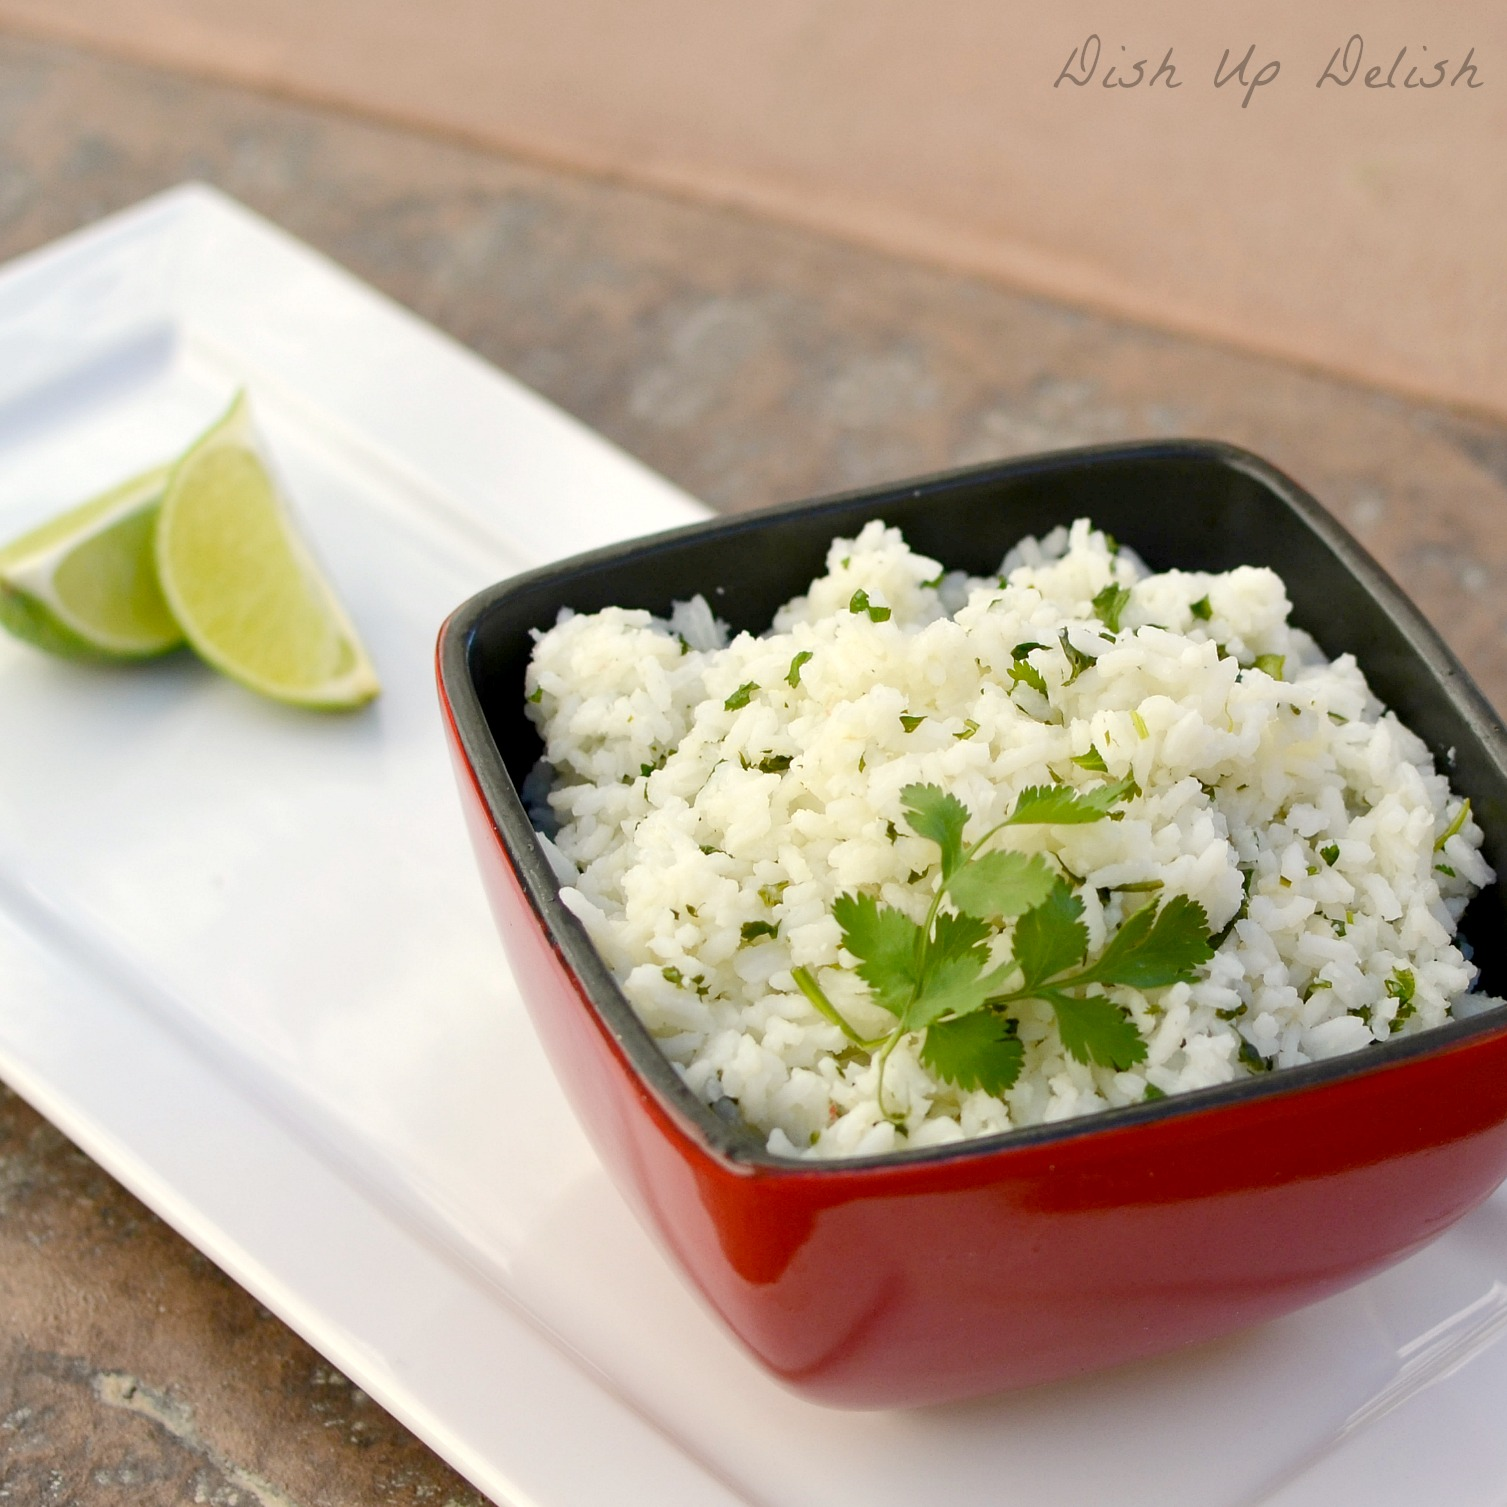 Cilantro Lime Rice from Dish Up Delish